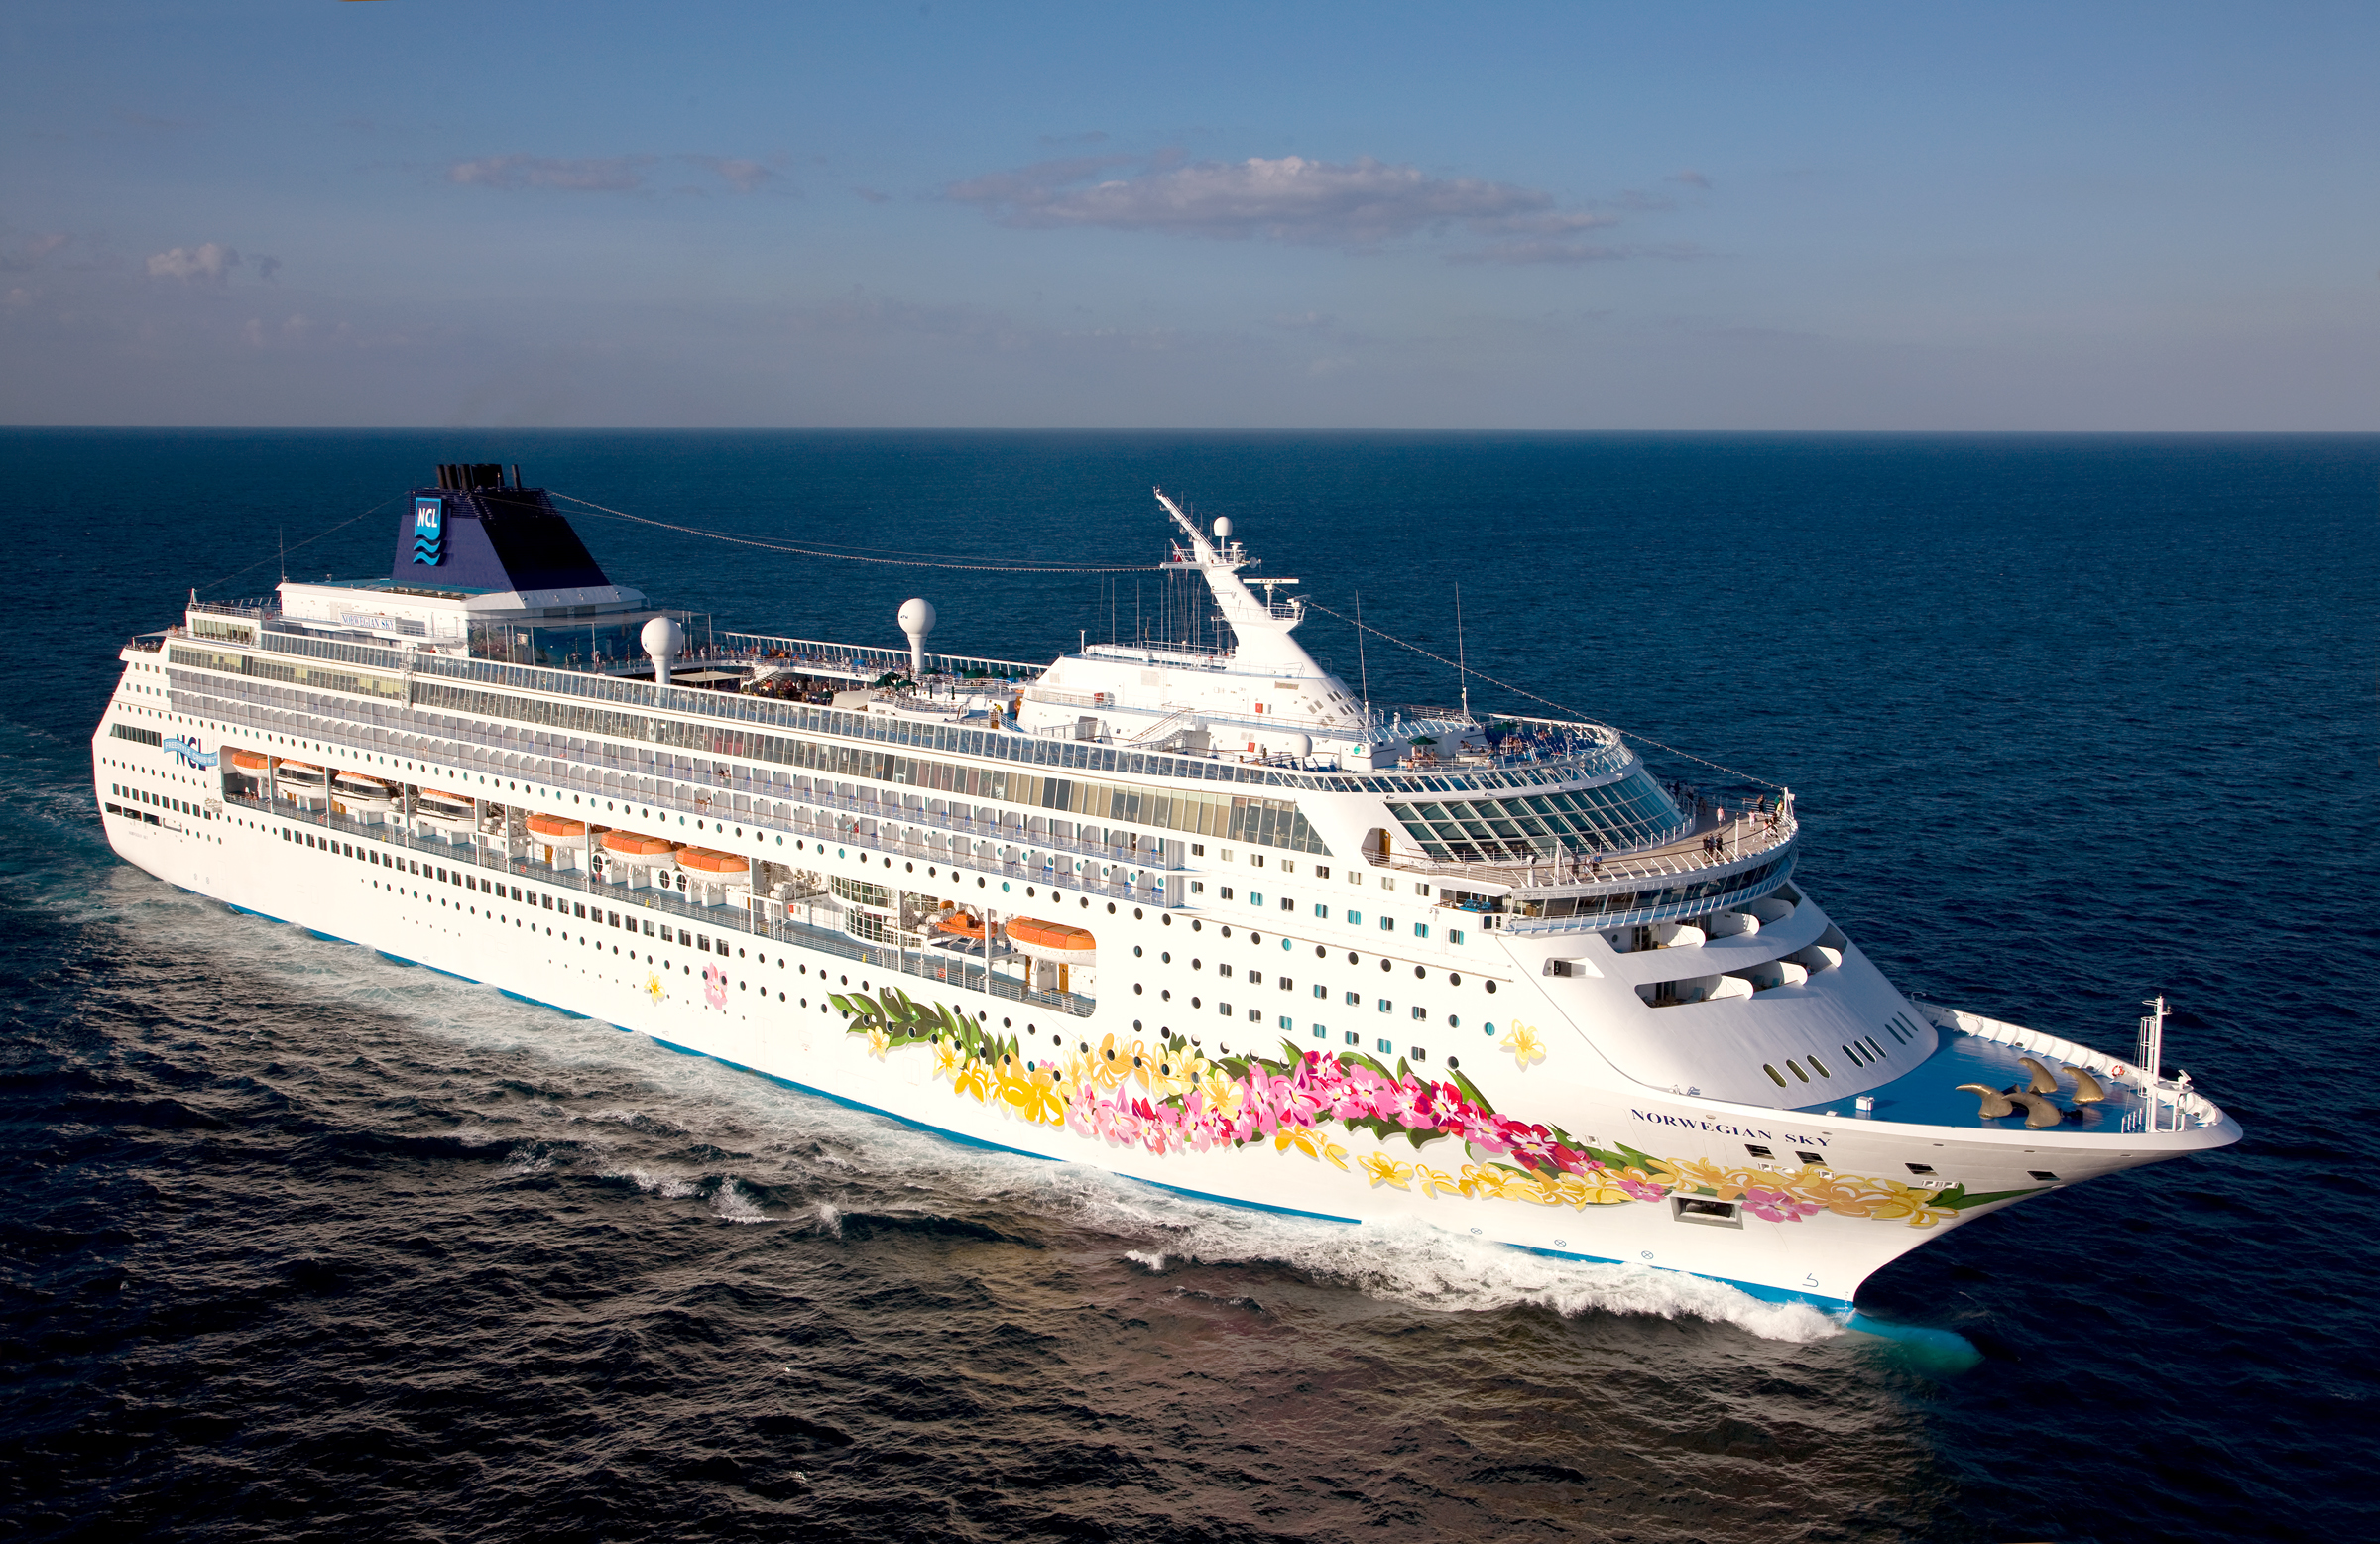 10 common cruise ship mistakes first-timers make all the time | Cruise.Blog